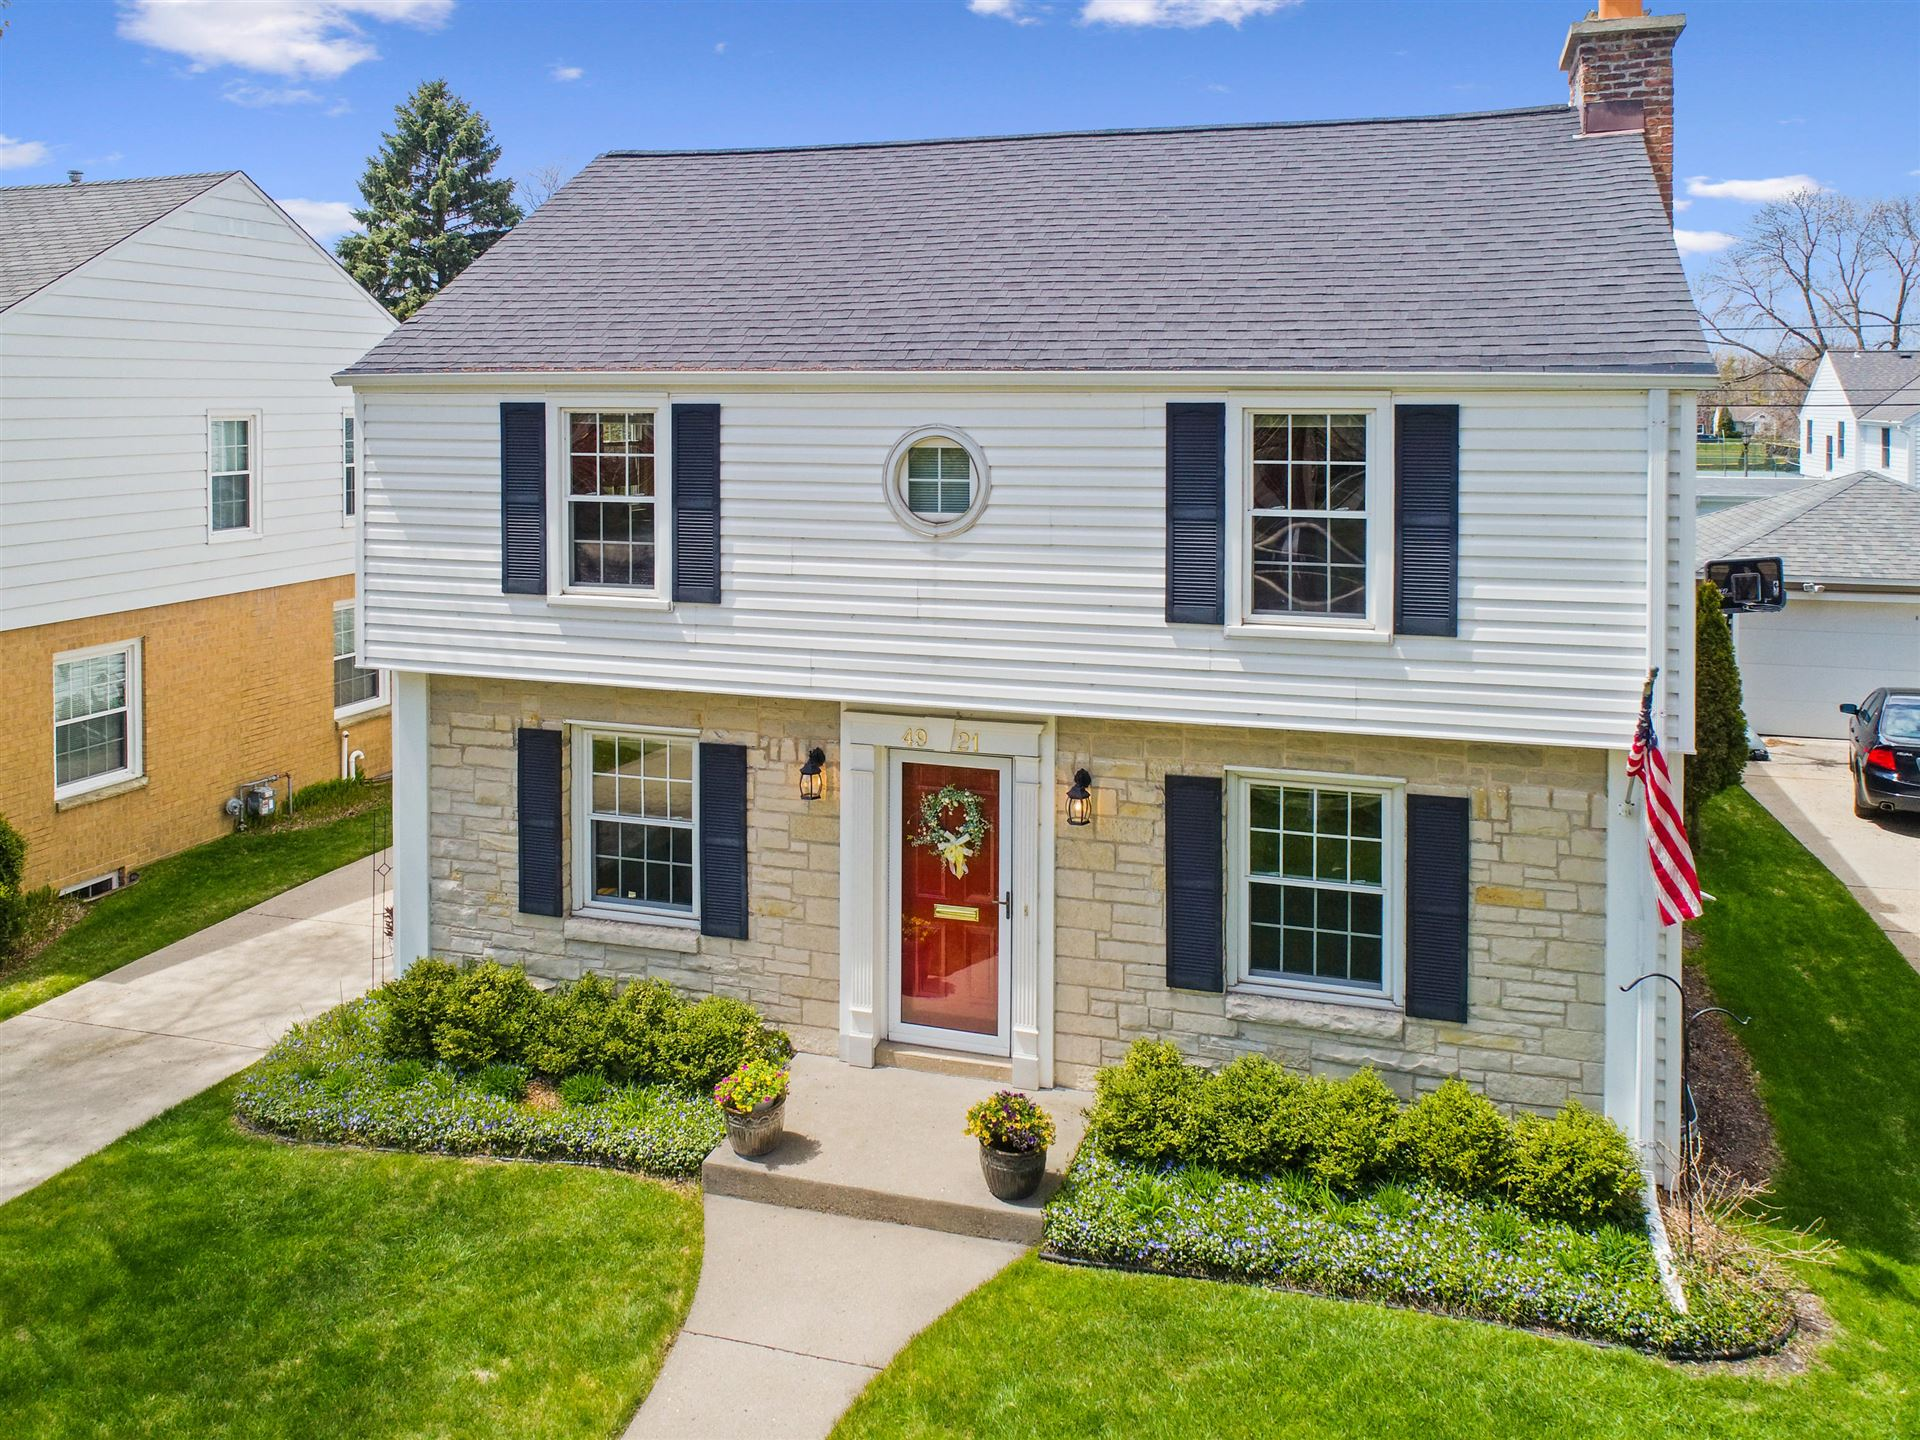 4921 N Wildwood Ave, Whitefish Bay, WI 53217 - #: 1686354